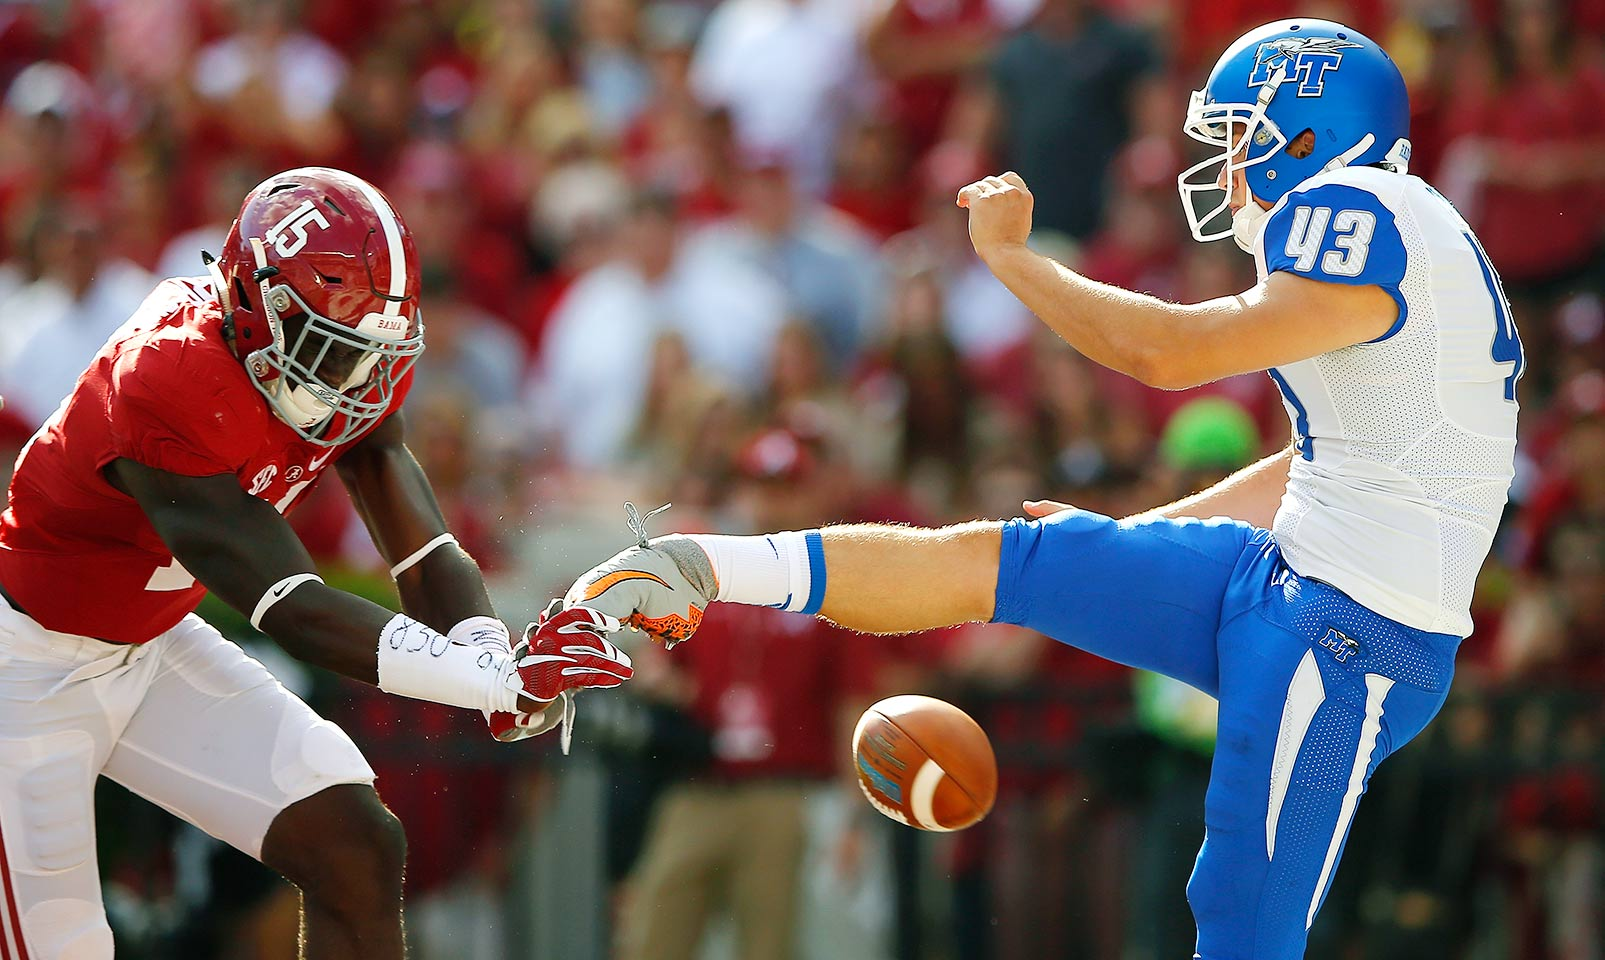 Alabama 37, Middle Tennessee 10: Ronnie Harrison's blocked punt for a safety was just part of the onslaught as the Crimson Tide built a 37–3 lead by the end of the third quarter.